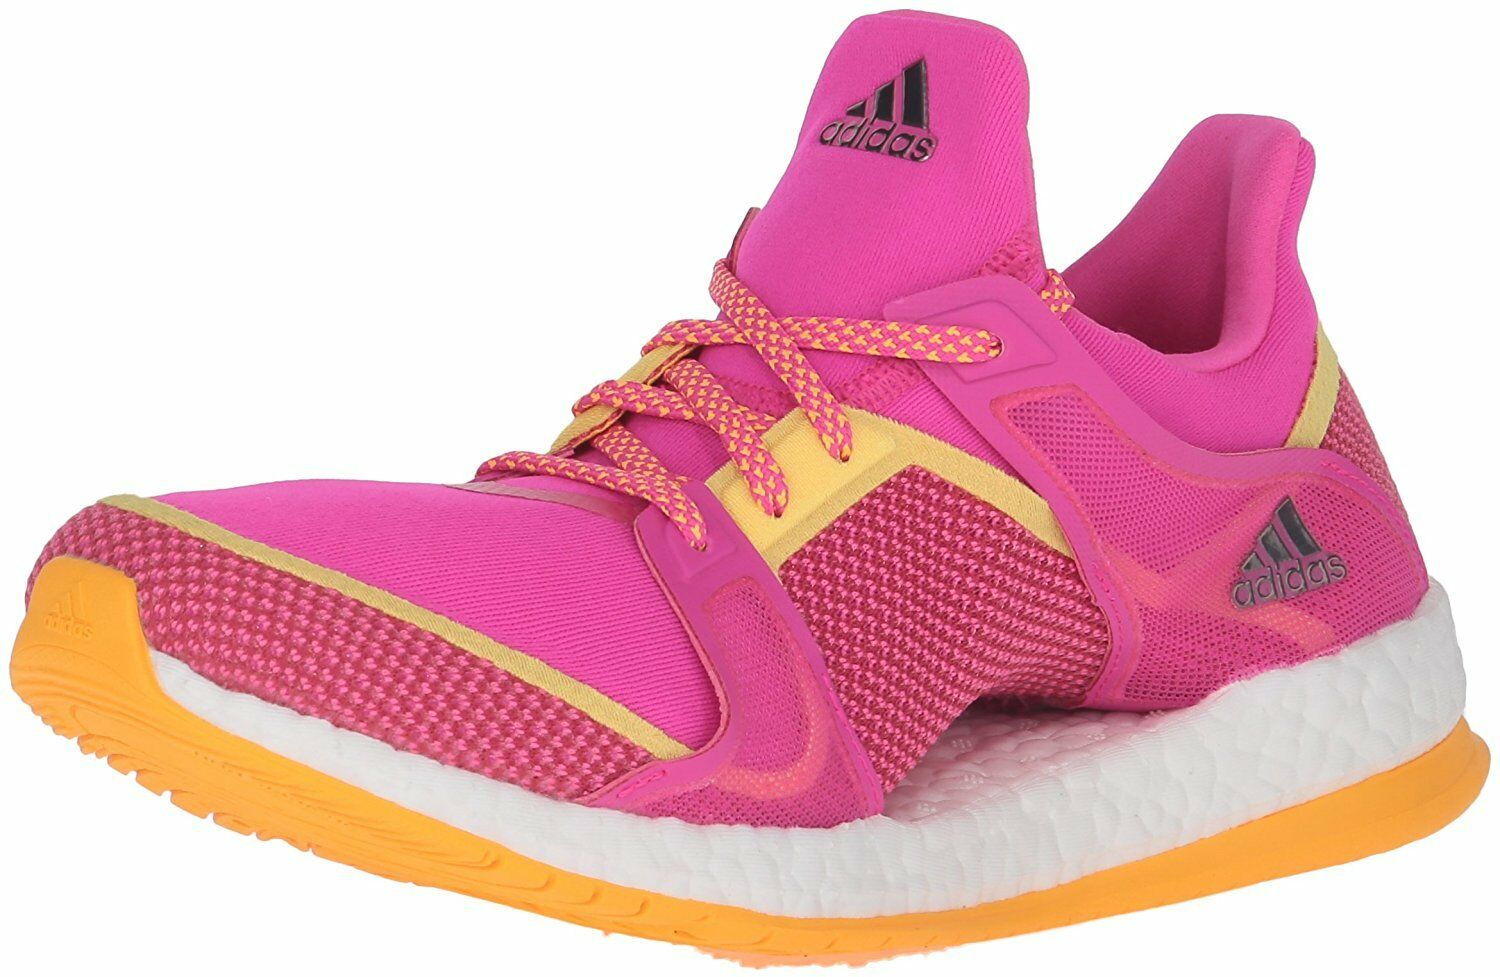 New Adidas Women Pure Boost X Tr Running shoes Pink Variety Sizes